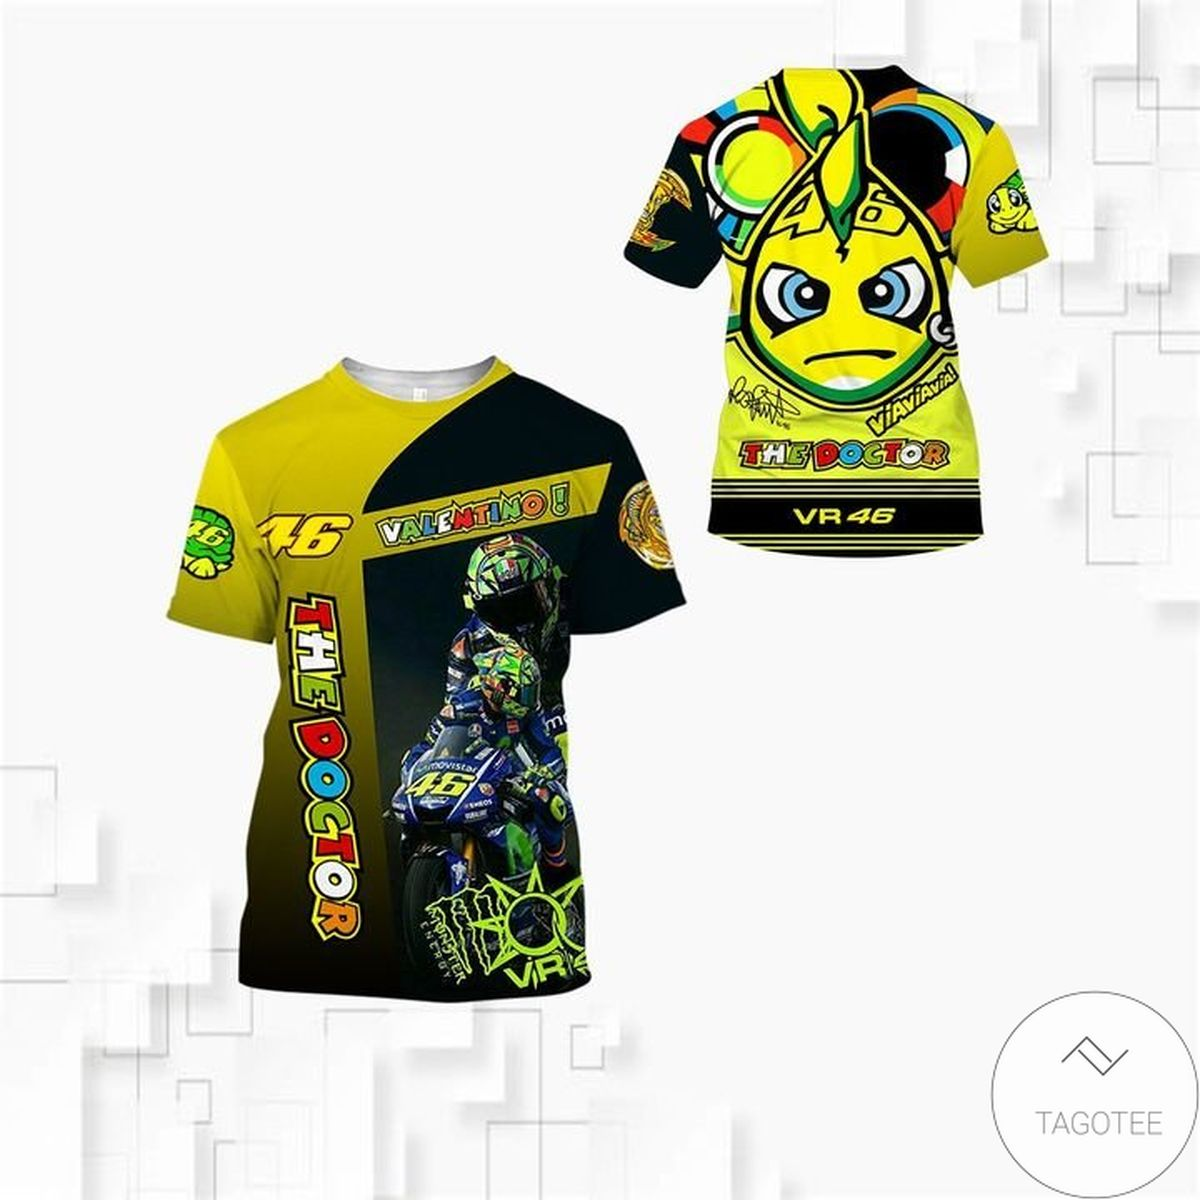 Valentino The Doctor Rossi 46 3d Shirt